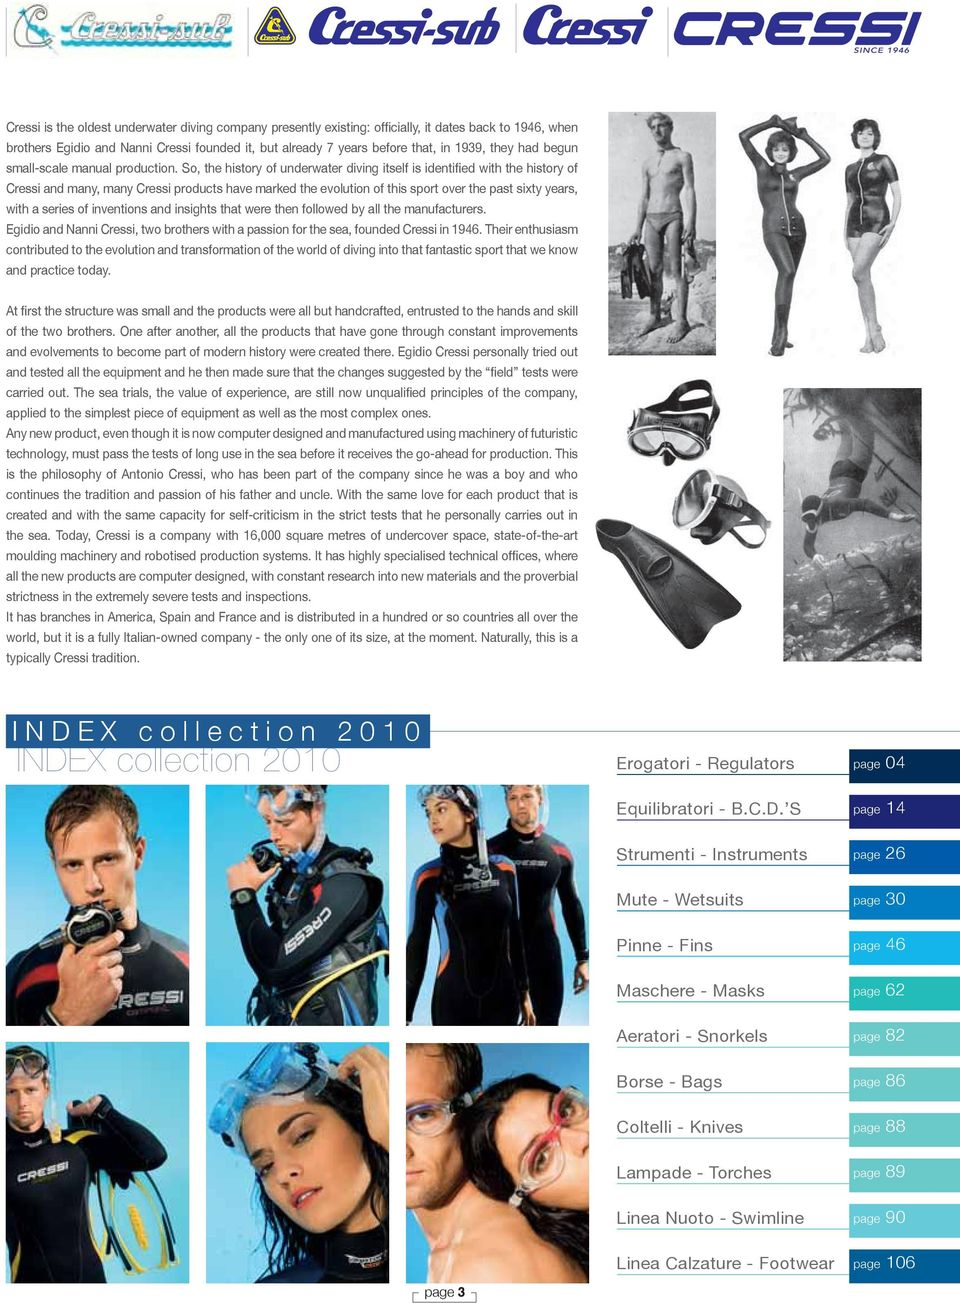 So, the history of underwater diving itself is identified with the history of Cressi and many, many Cressi products have marked the evolution of this sport over the past sixty years, with a series of